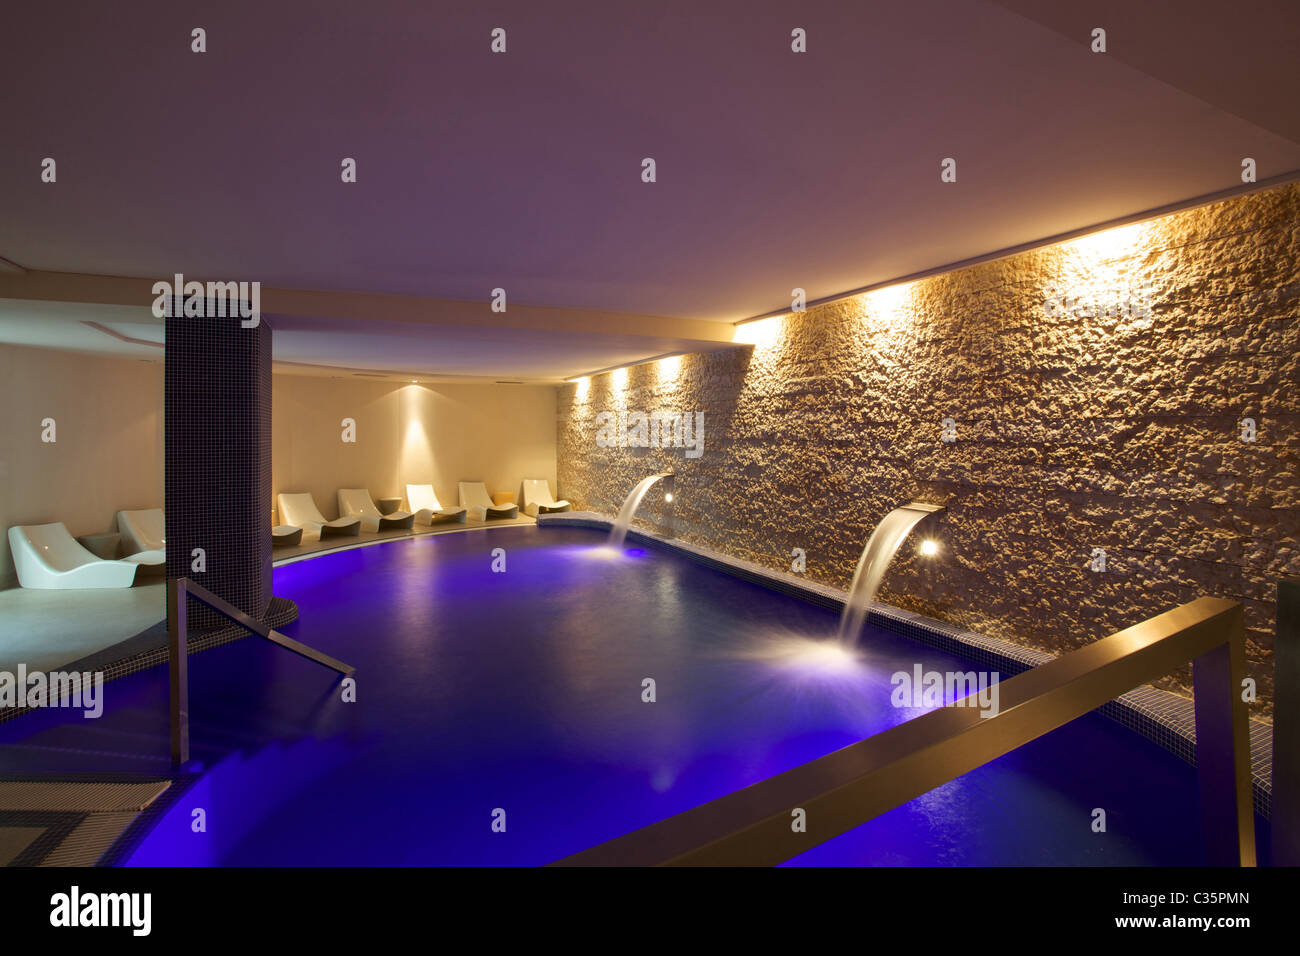 Hotel Pool In Riva Stock Photos & Hotel Pool In Riva Stock Images ...